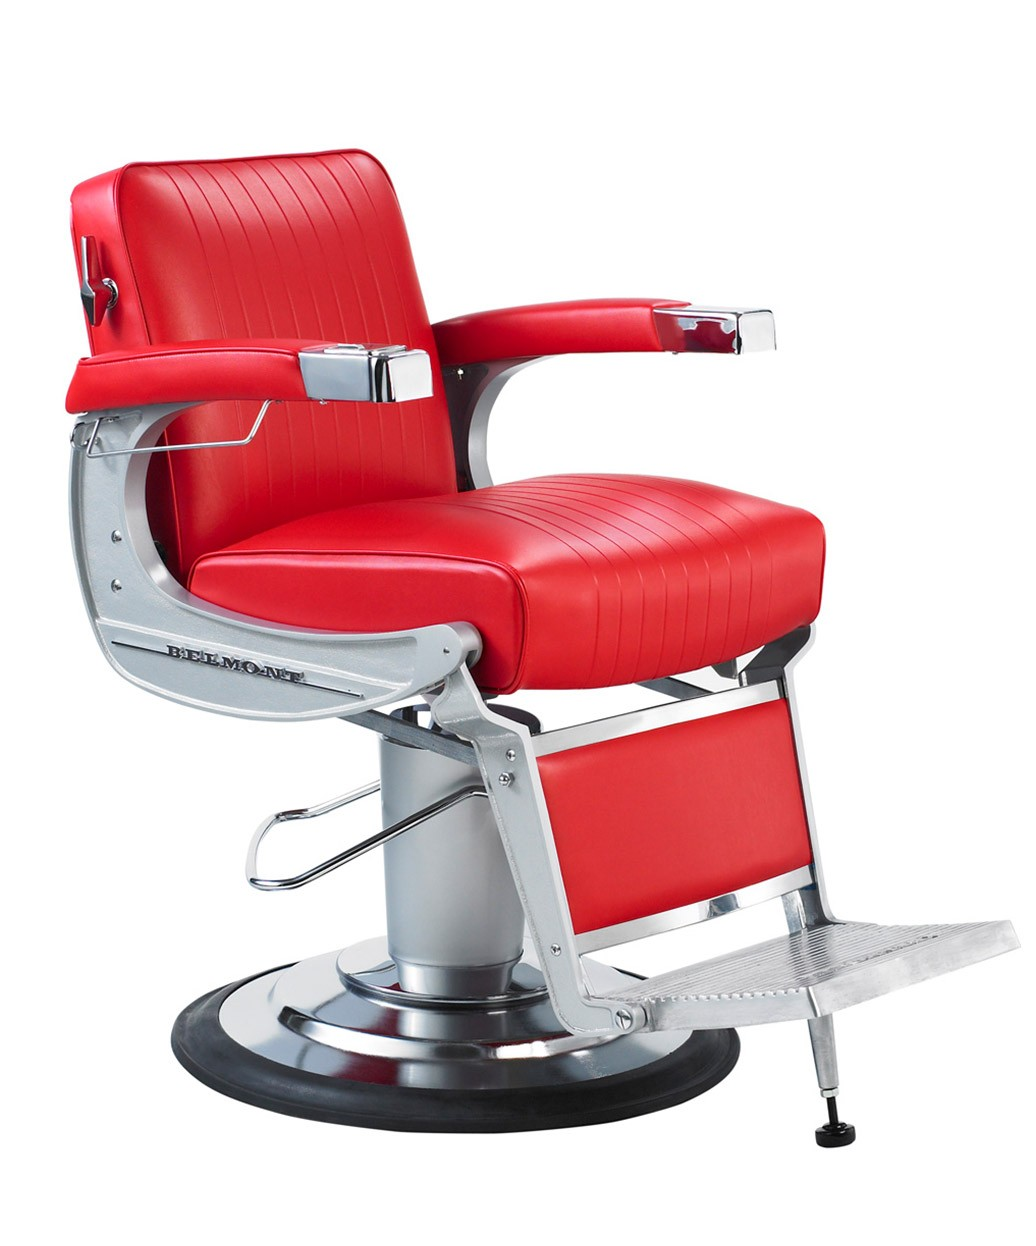 Barber Shop Chairs For Sale Takara Belmont Bb 225 Elegance Barber Chair Made In Japan